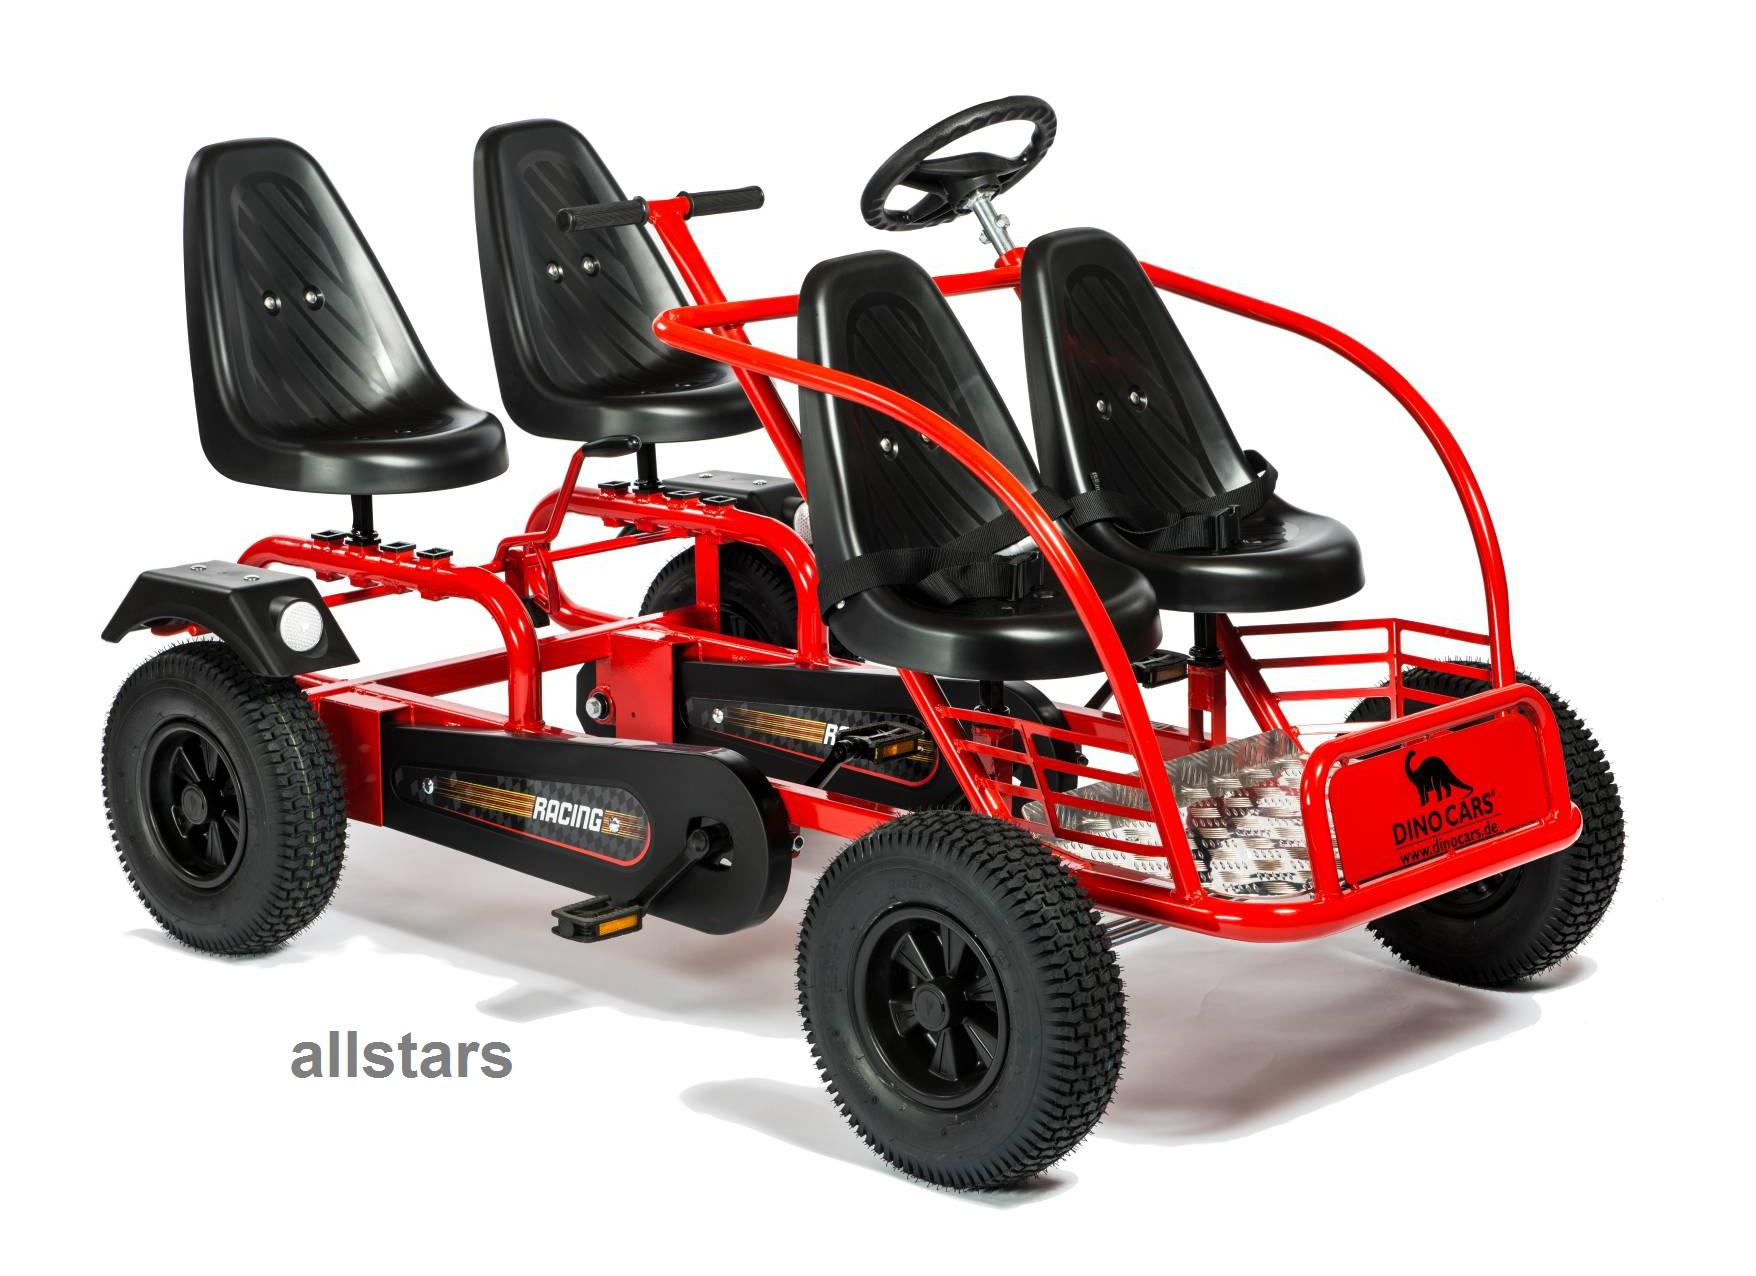 dinocars train tuk tuk viersitzer familien gokart. Black Bedroom Furniture Sets. Home Design Ideas